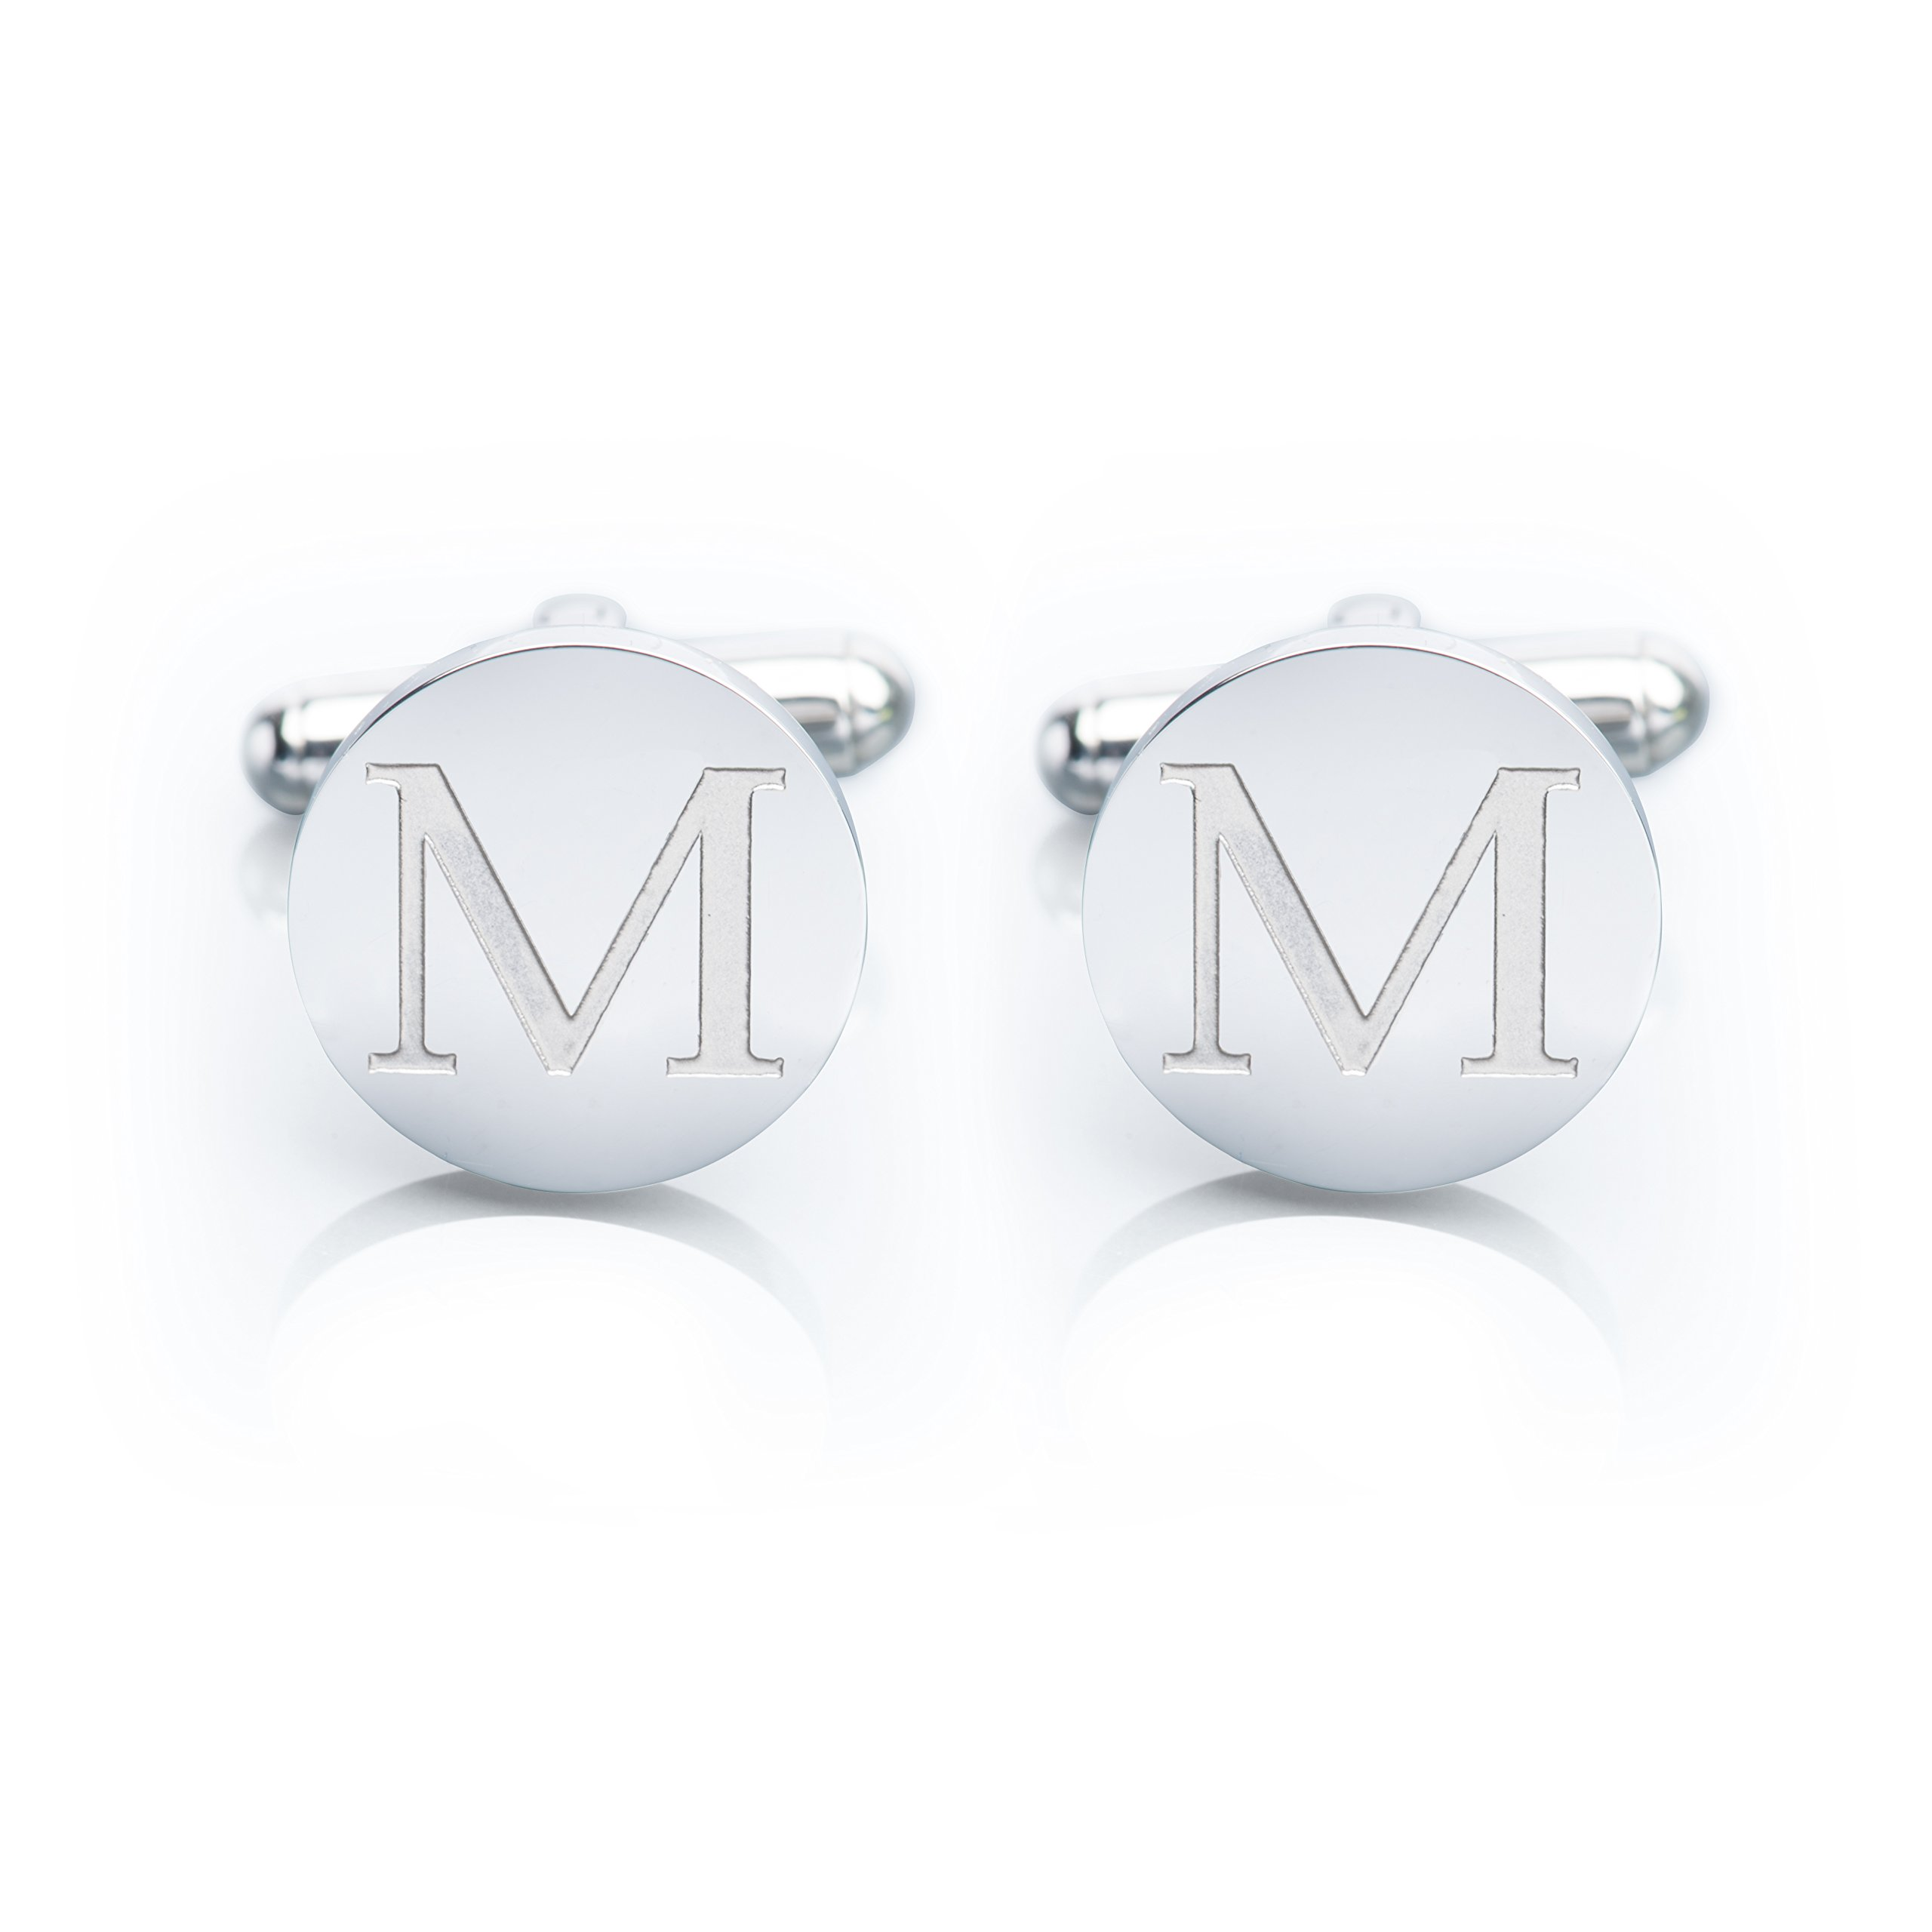 Men's 18K White Gold-Plated Engraved Initial Cufflinks with Gift Box– Premium Quality Personalized Alphabet Letter (M - White Gold) by Iron & Oak (Image #1)